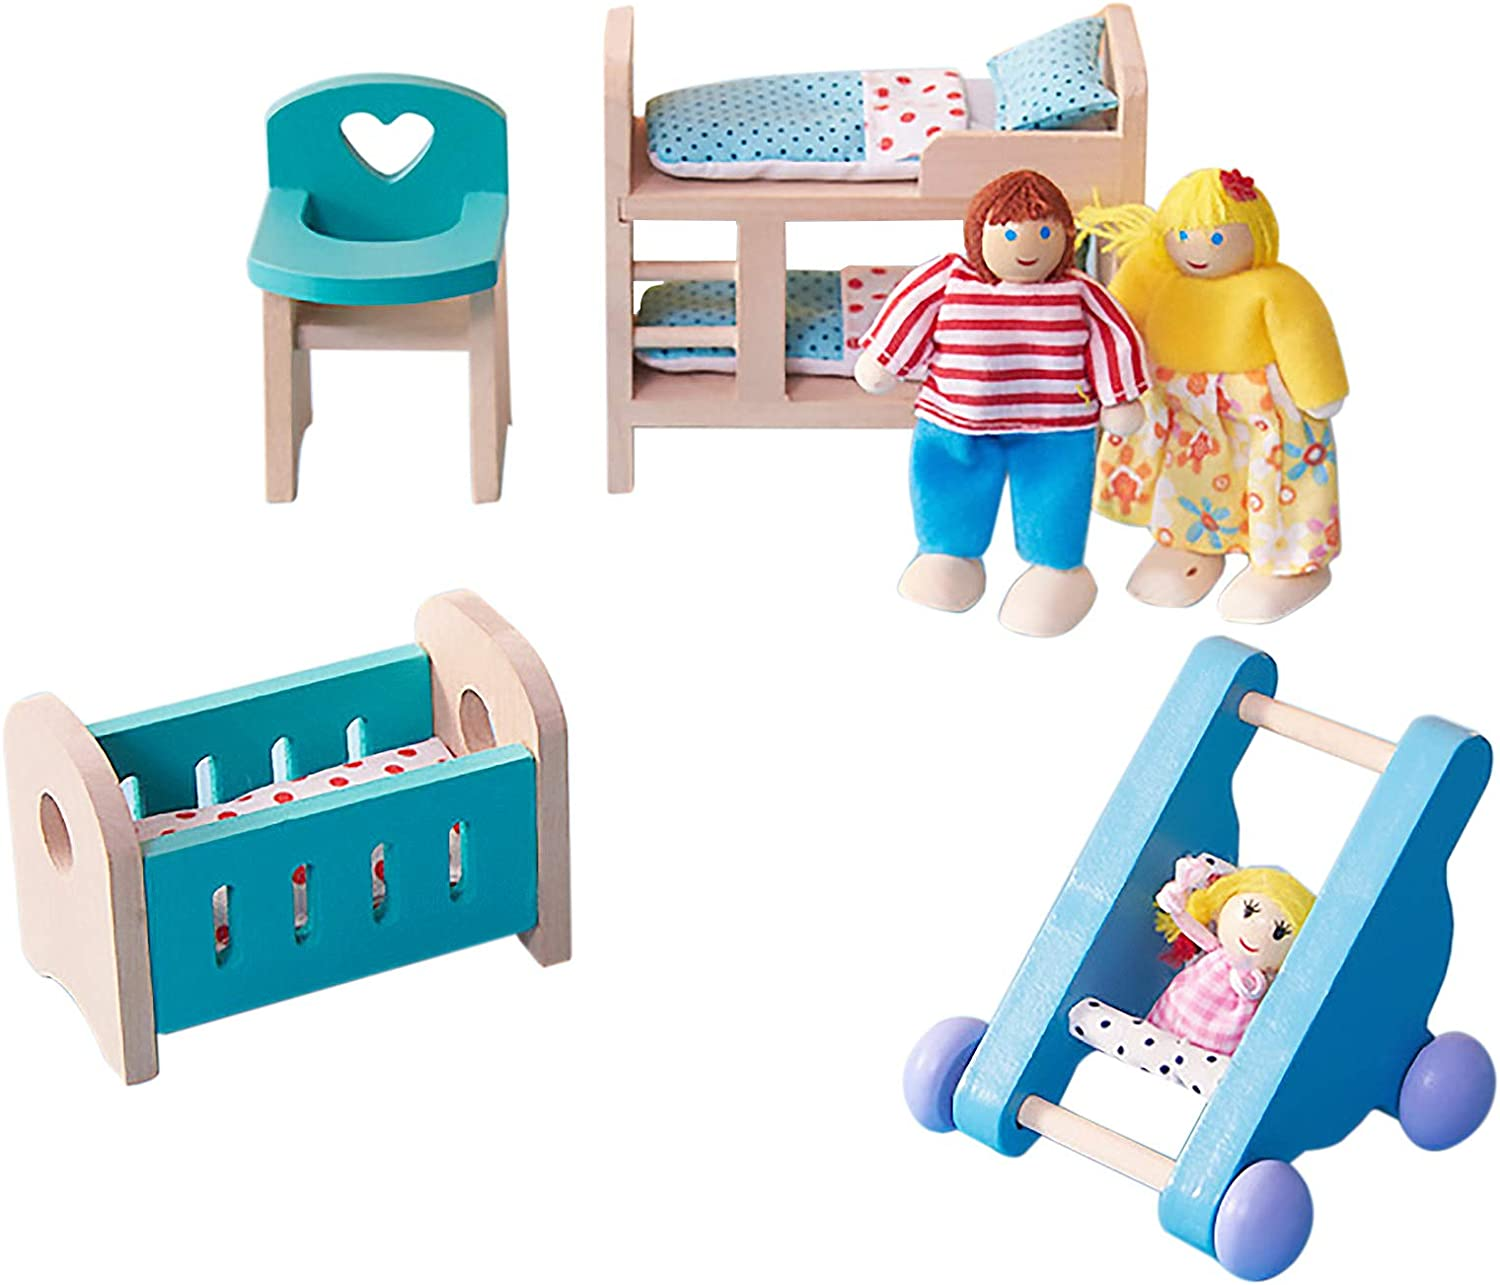 GIFZES Wooden Doll Toy House Furniture,Kids Doll Toy House Furniture,Baby Room Set Miniature Models DIY Assembled Toys with Chair Bed Stroller Pretend Play Kids Toy